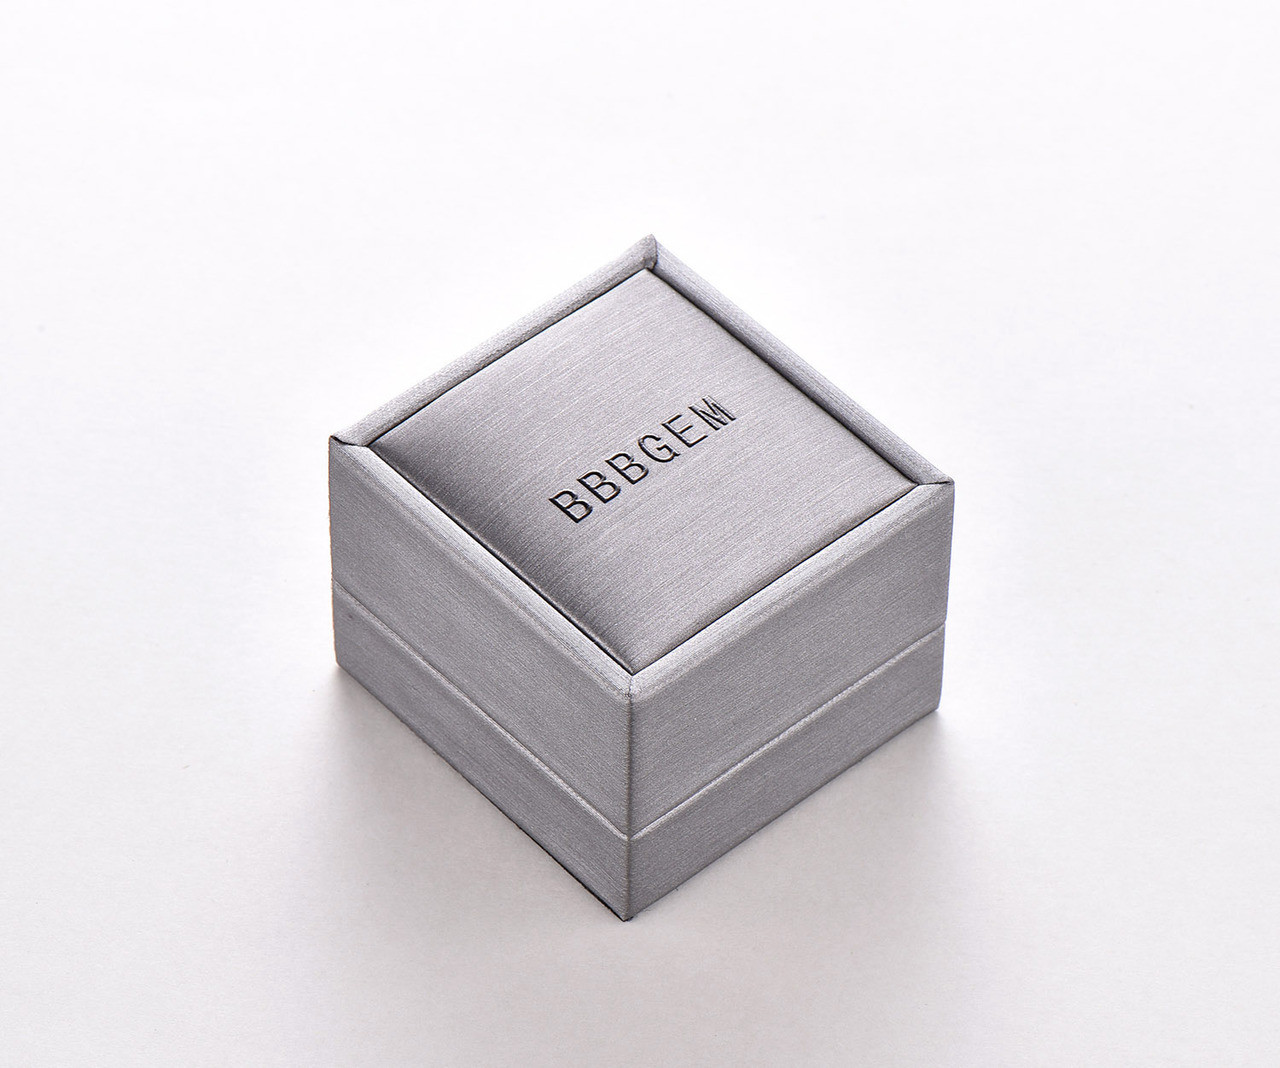 Wedding Ring Box.Bbbgem Gray Ring Box Wedding Ring Box Engagement Ring Box Jewelry Case Gift For Her Jewellery Gift Case